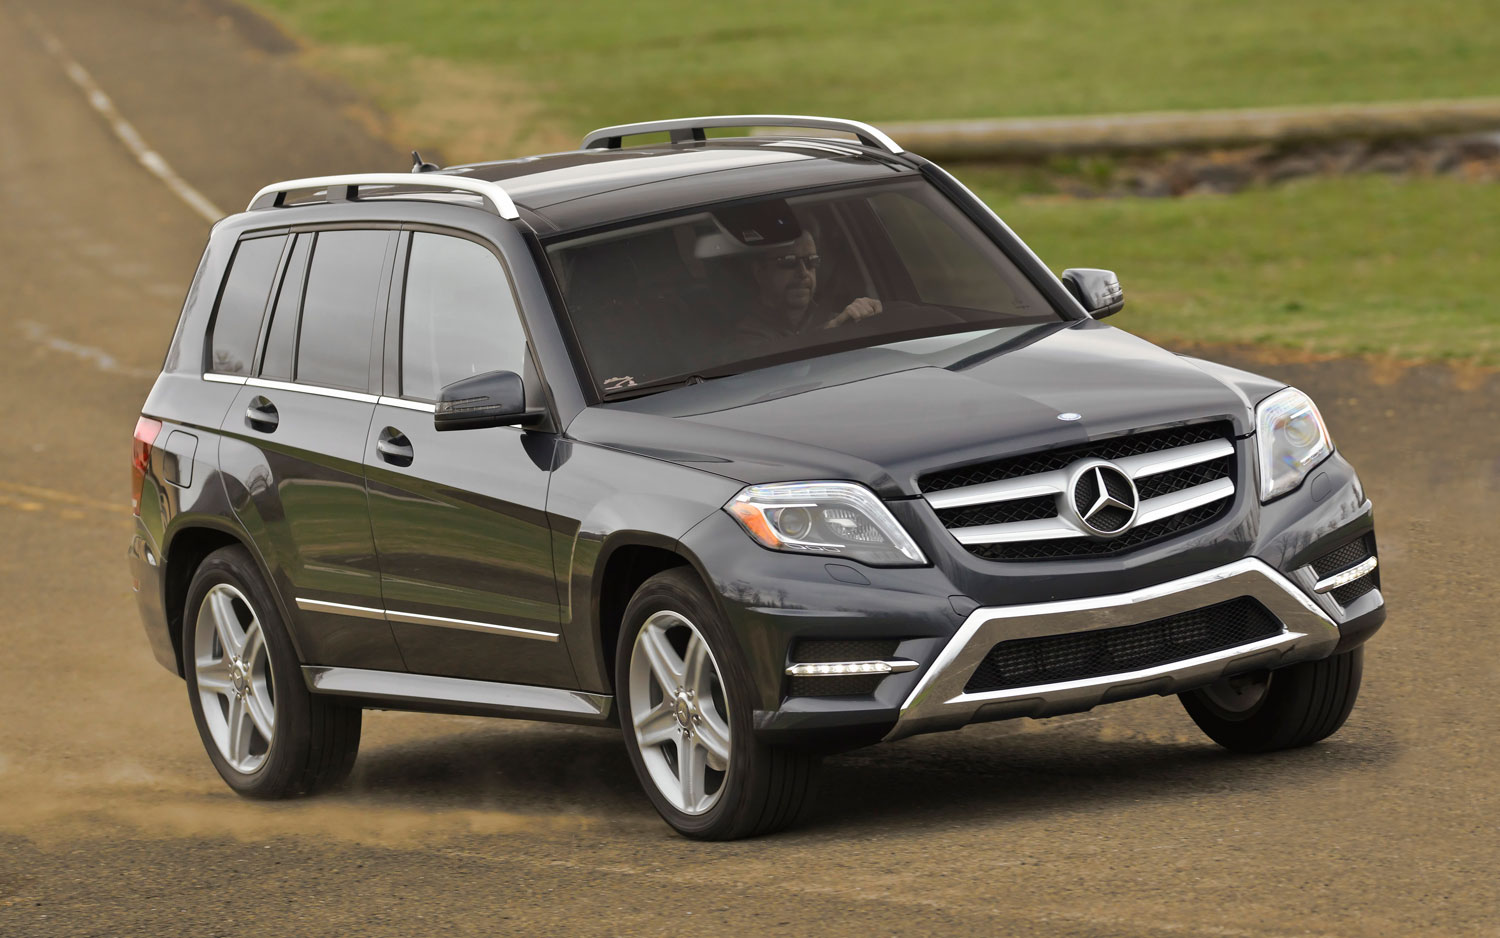 2013 mercedes benz glk250 bluetec 4matic driven automobile magazine. Black Bedroom Furniture Sets. Home Design Ideas